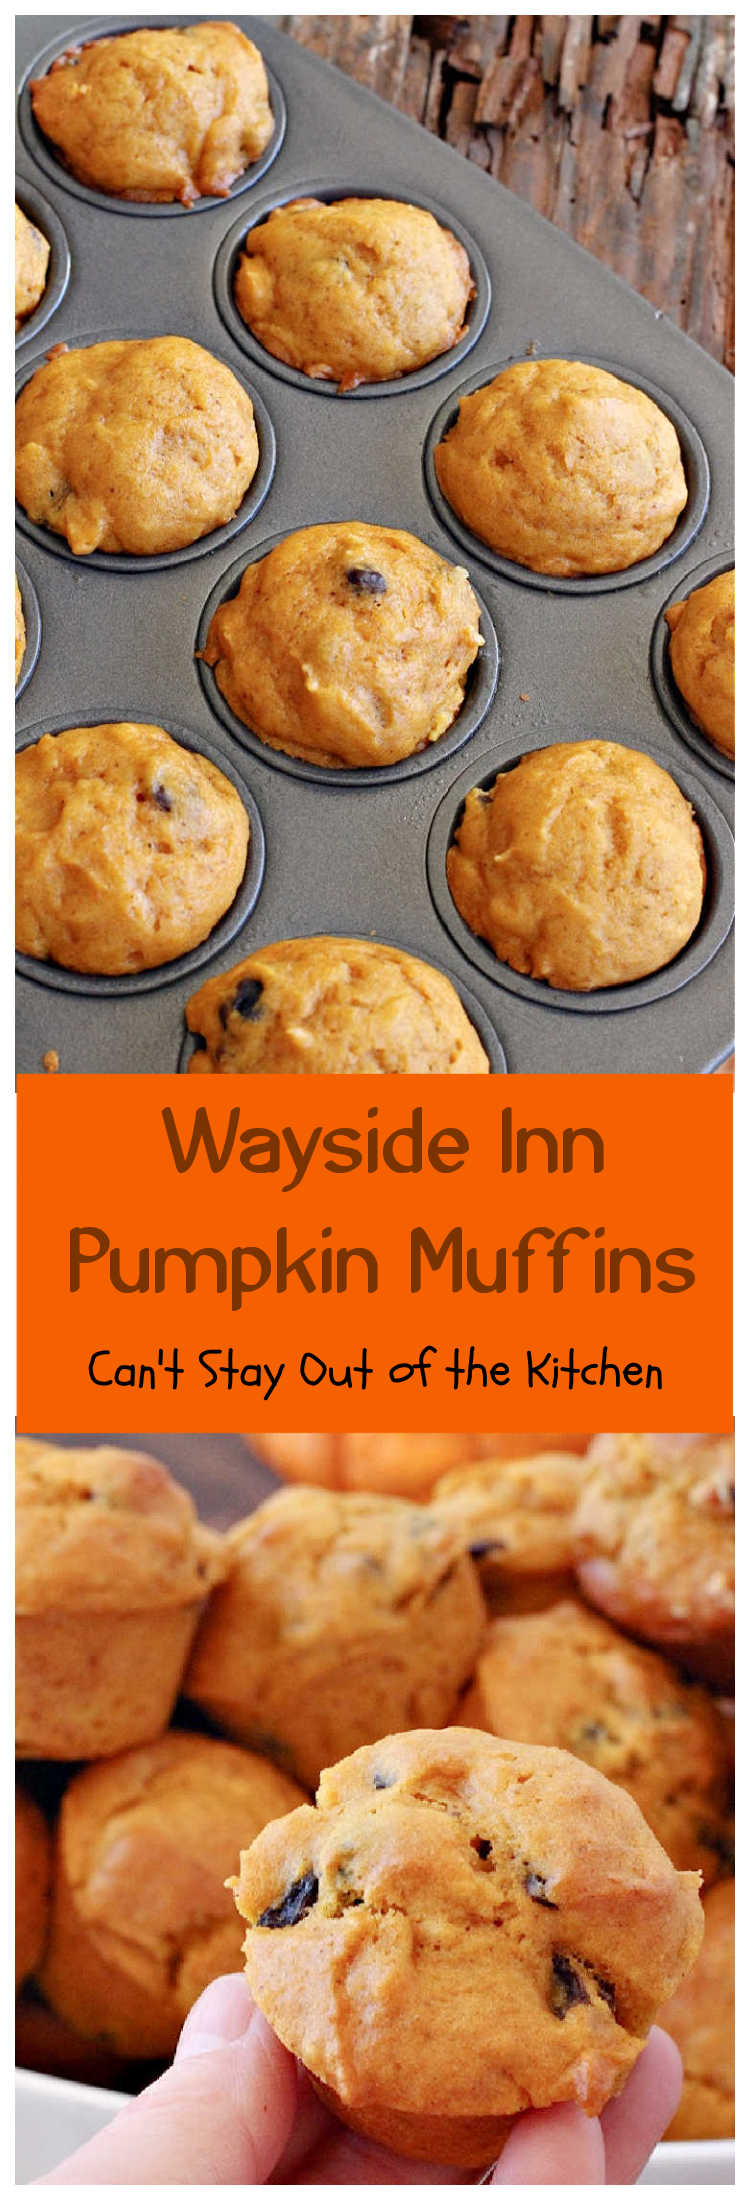 Wayside Inn Pumpkin Muffins | Can't Stay Out of the Kitchen | these fabulous #muffins are served at the historic #LongellowsWaysideInn in Sudbury, Massachusetts. They are absolutely divine! Great for a #holiday #breakfast like #Thanksgiving or #Christmas #pumpkin #raisins #PumpkinMuffins #WaysideInnPumpkinMuffins